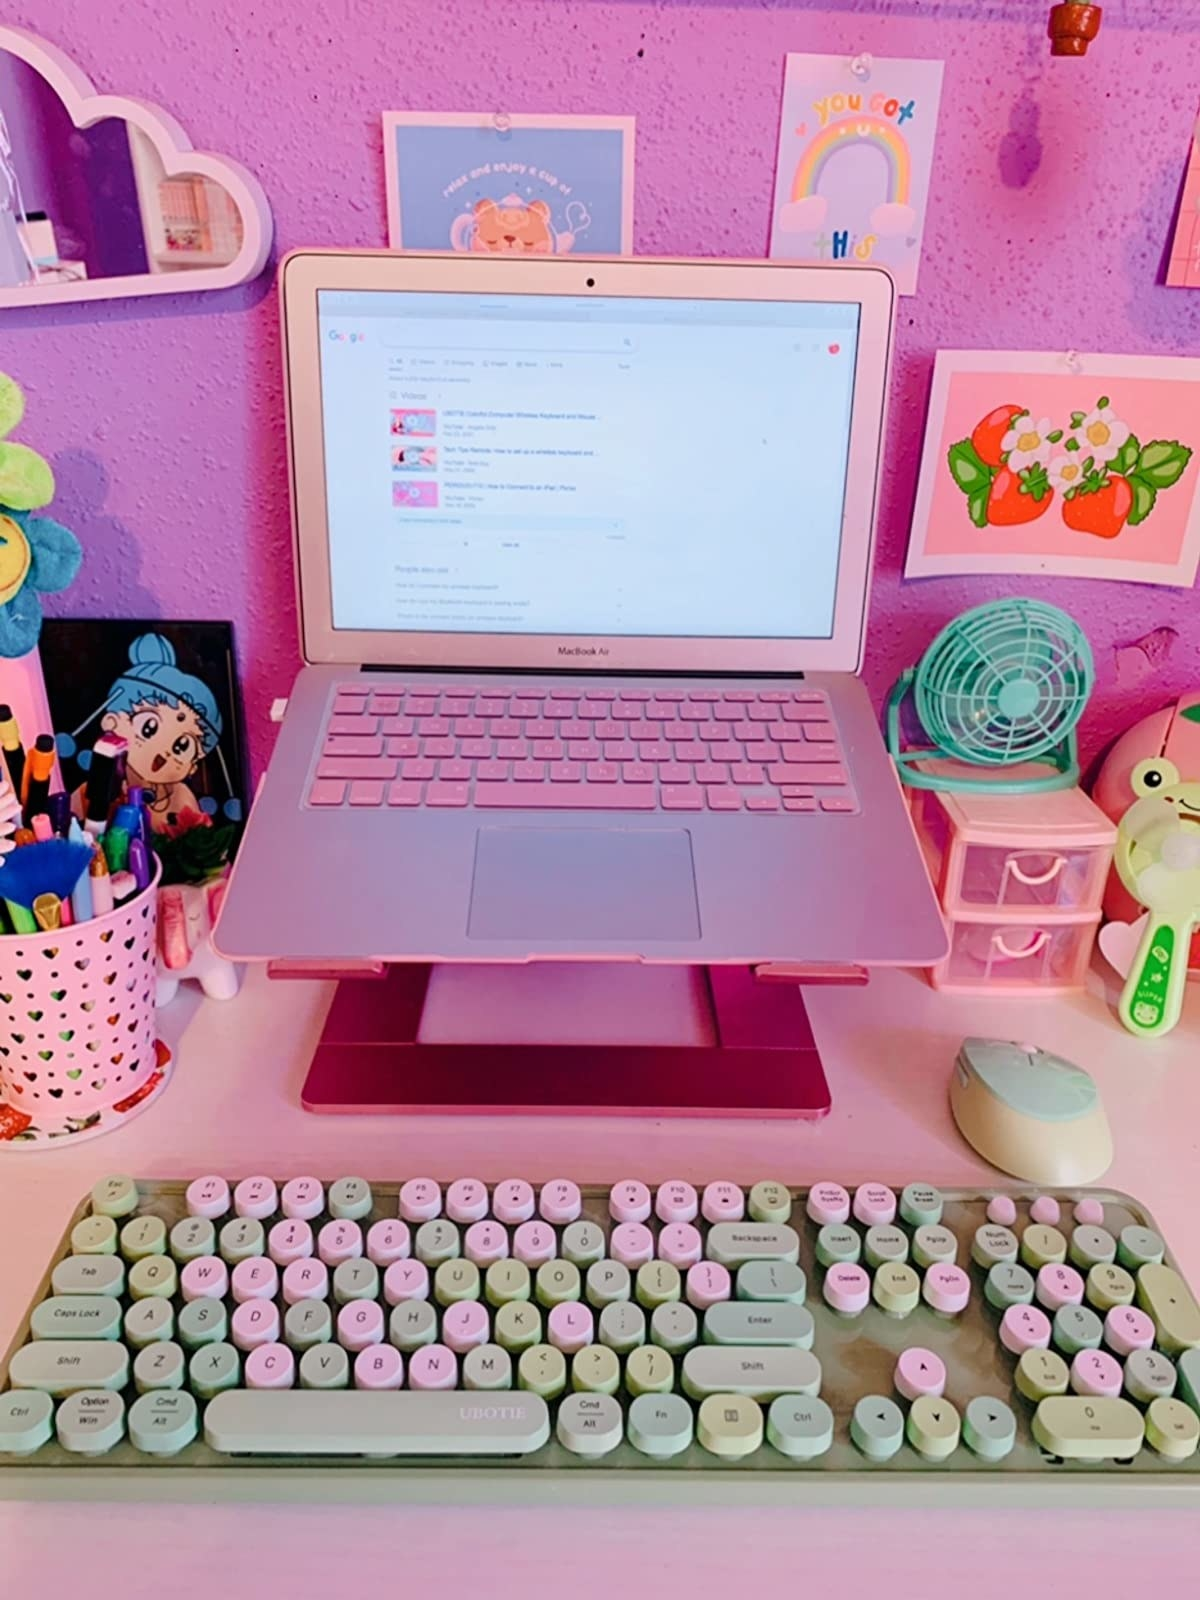 pink and green raised keyboard below pink laptop on colorful desk